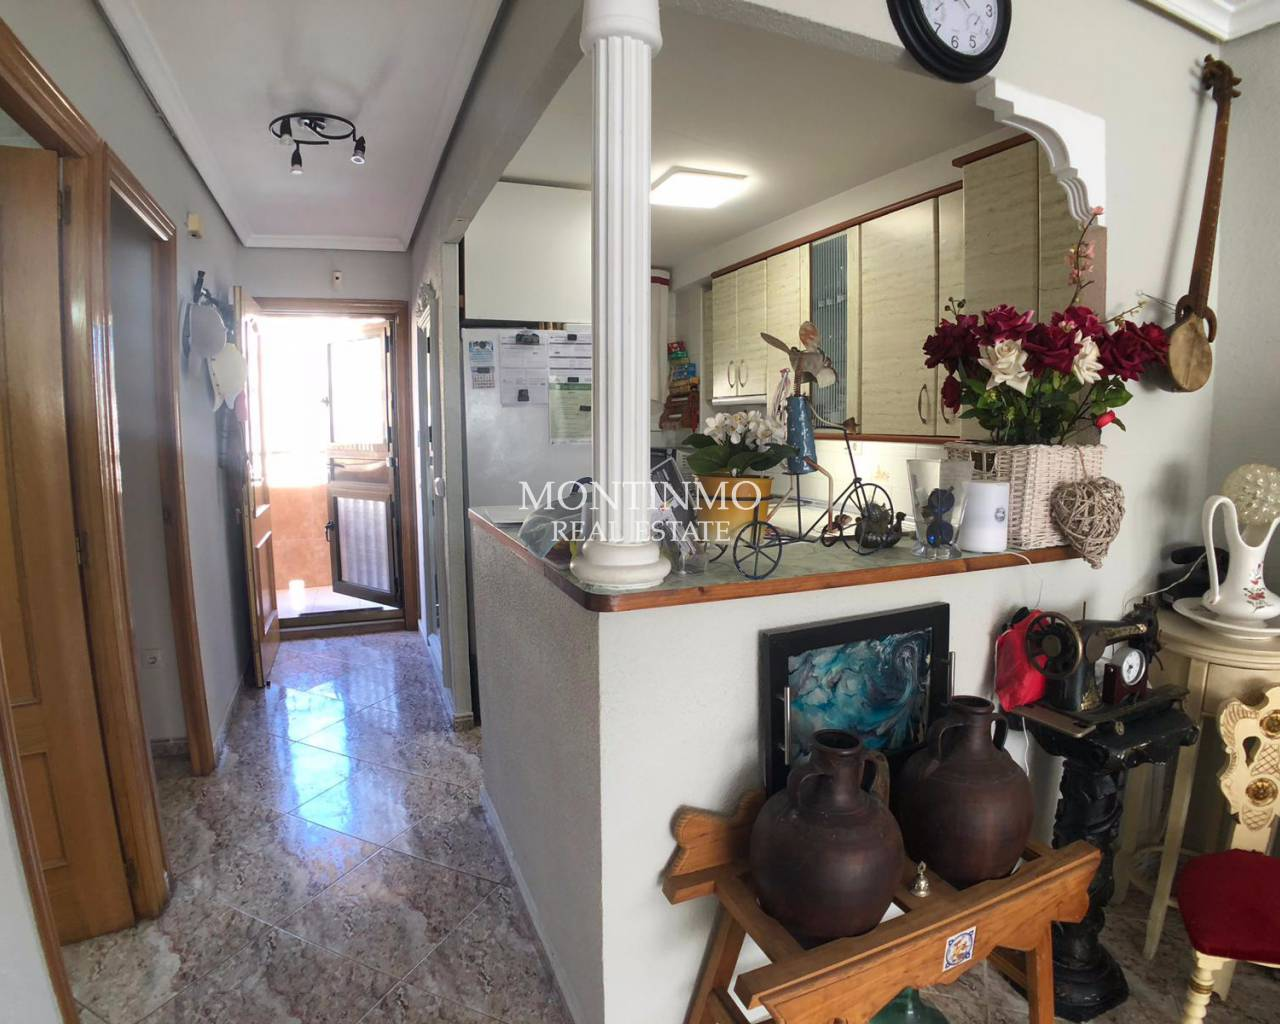 Sale - Apartment - La Mata - Cabo Cervera